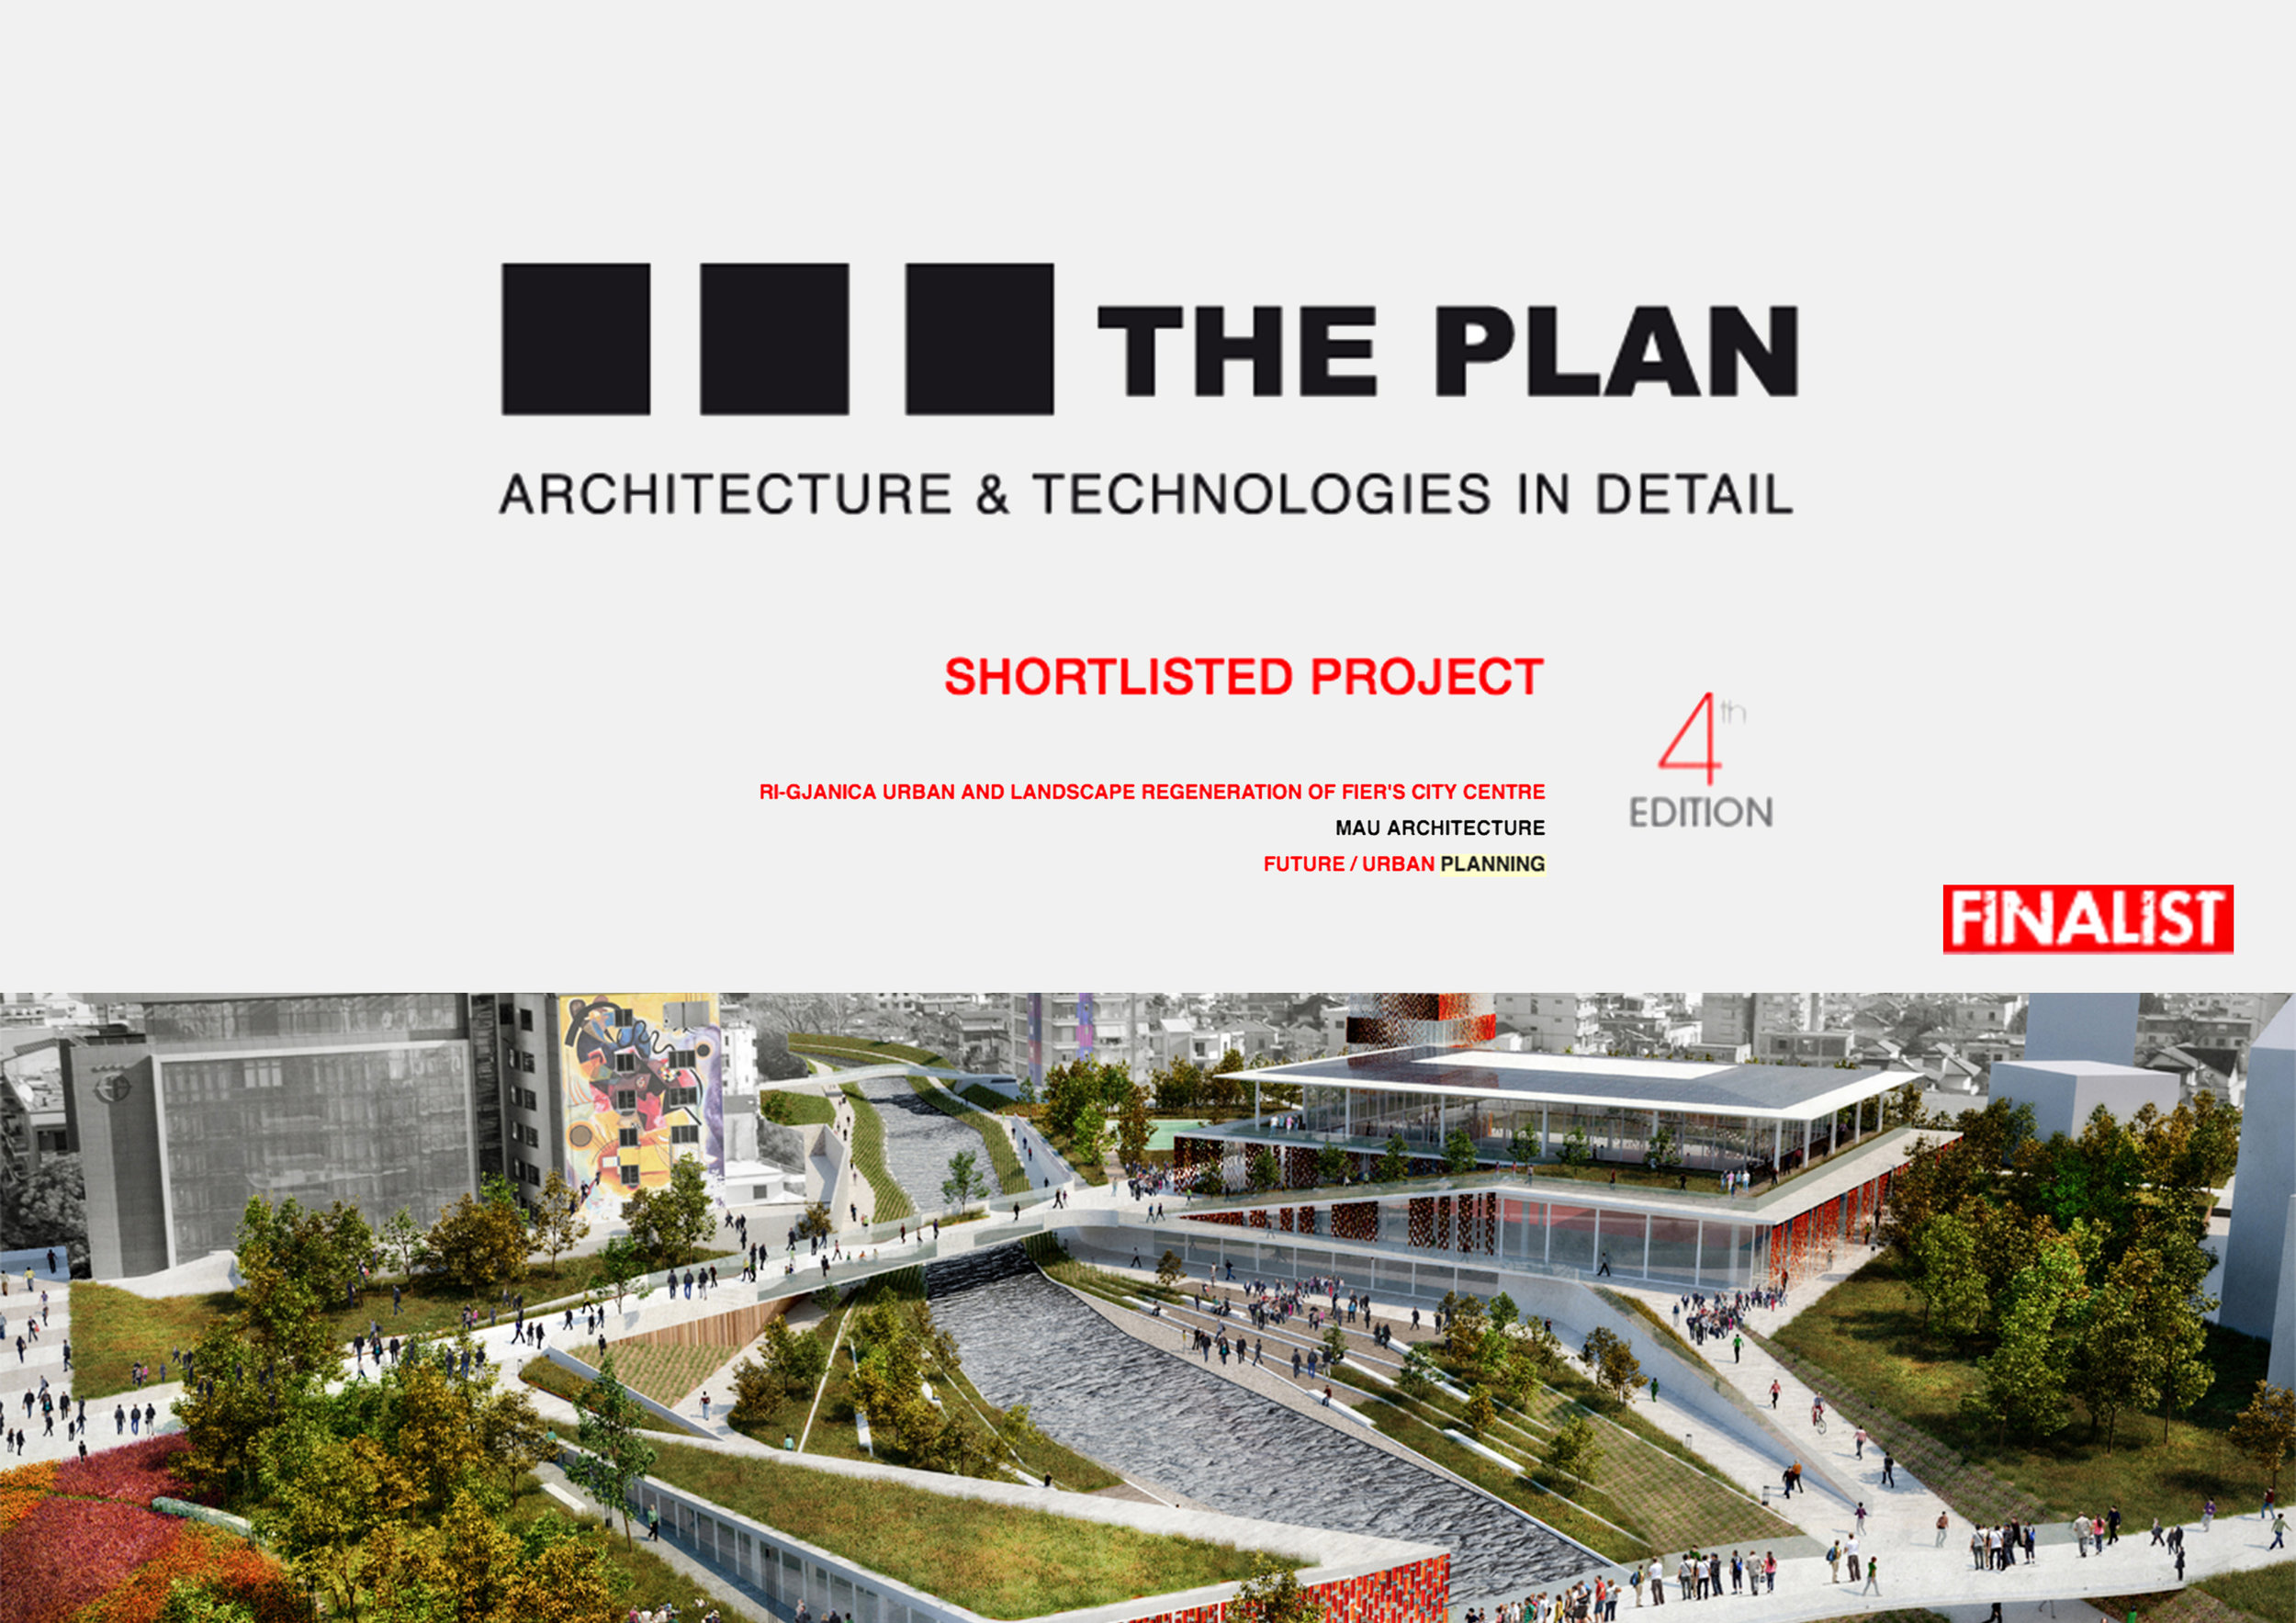 We are glad to announce that we are finalist for THE PLAN AWARD 2018   Our project RI-GJANICA was shortlisted among 600 projects from allover the world